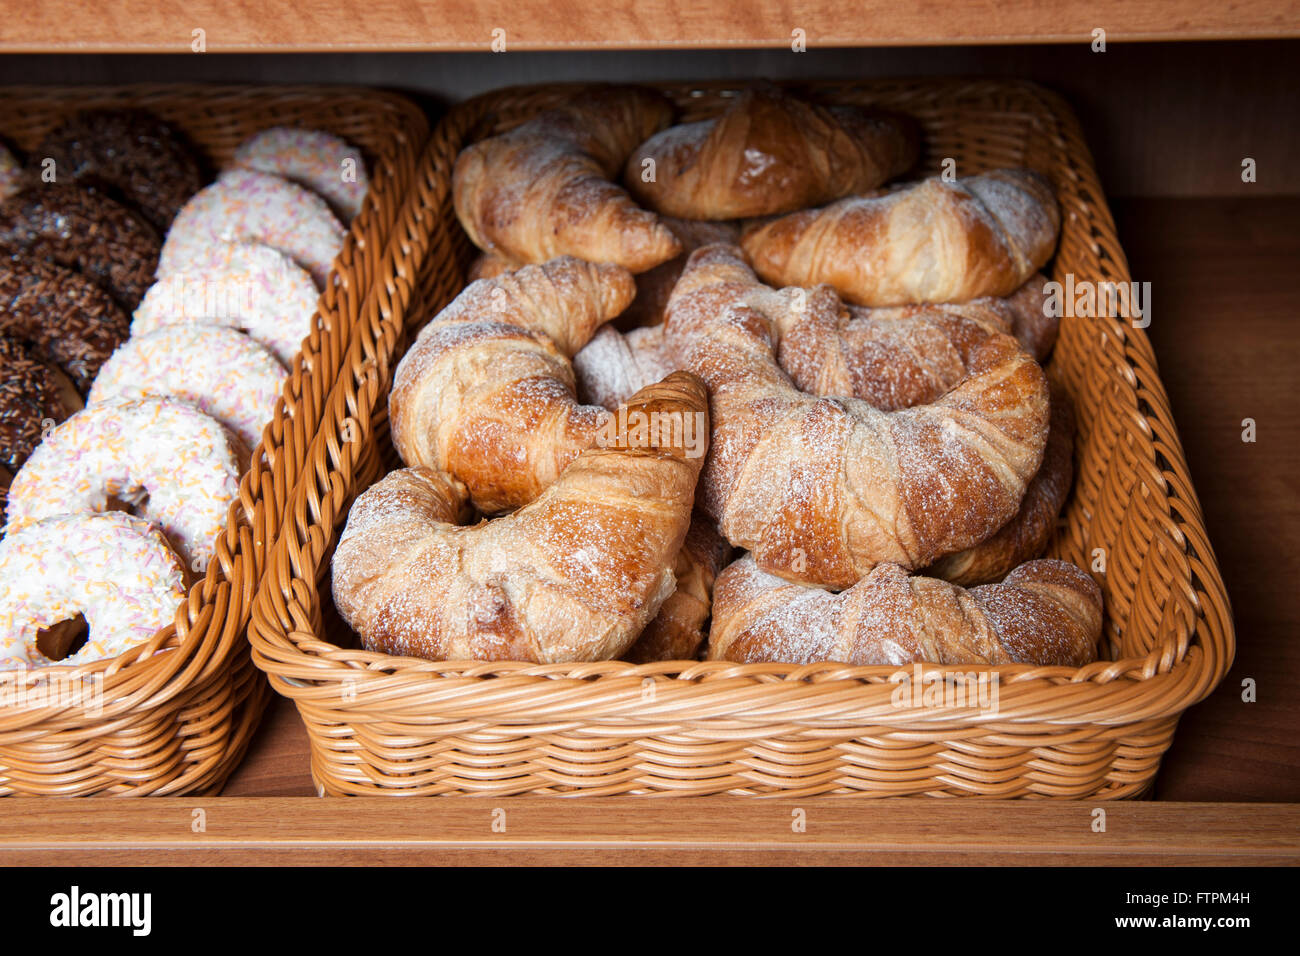 Croissants dusted with white icing sugar on display in a woven basket next to a basket of iced doughnuts with sprinkles - Stock Image